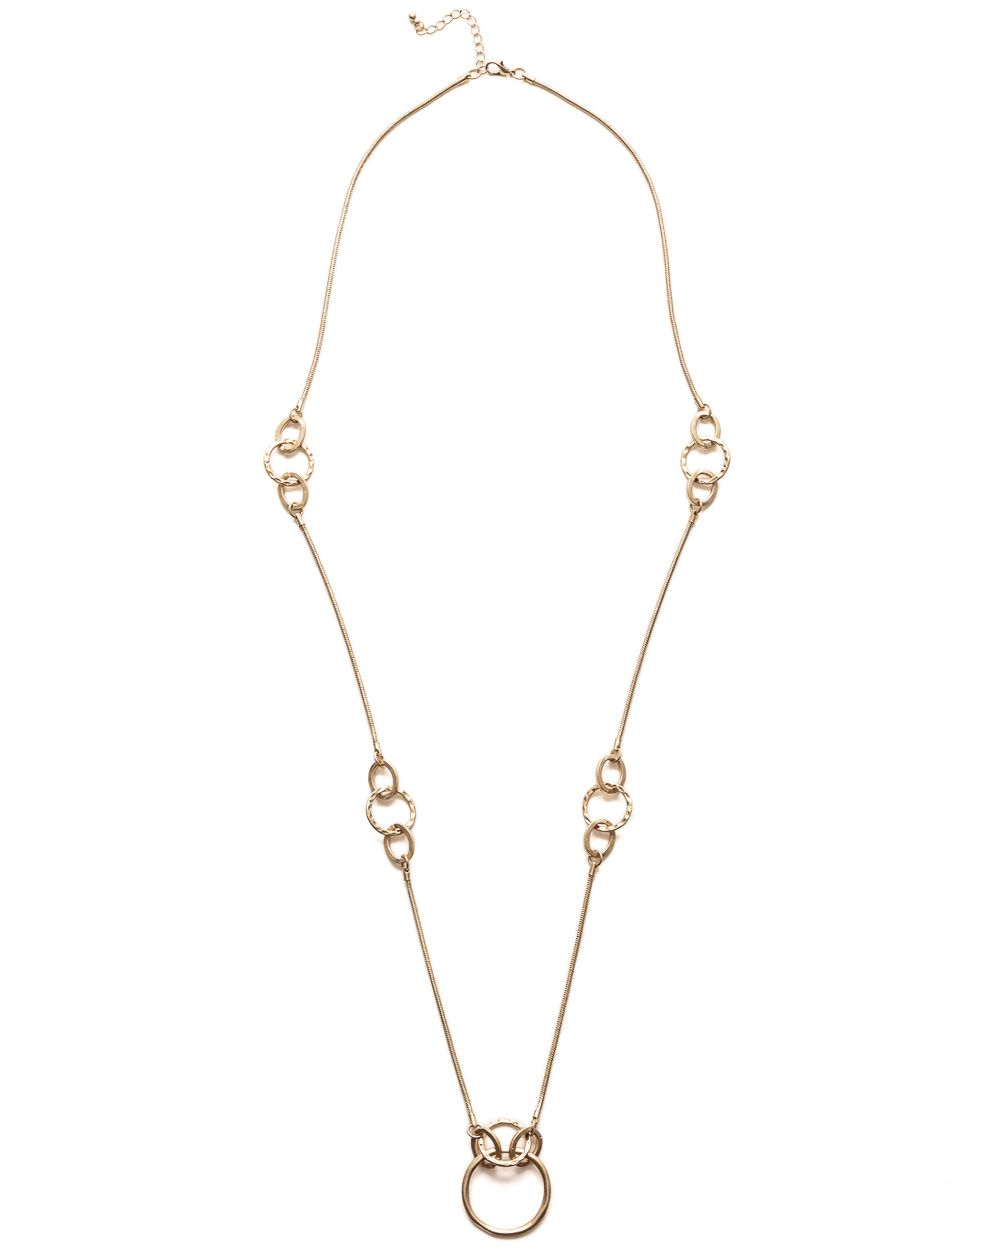 Irregular link necklace